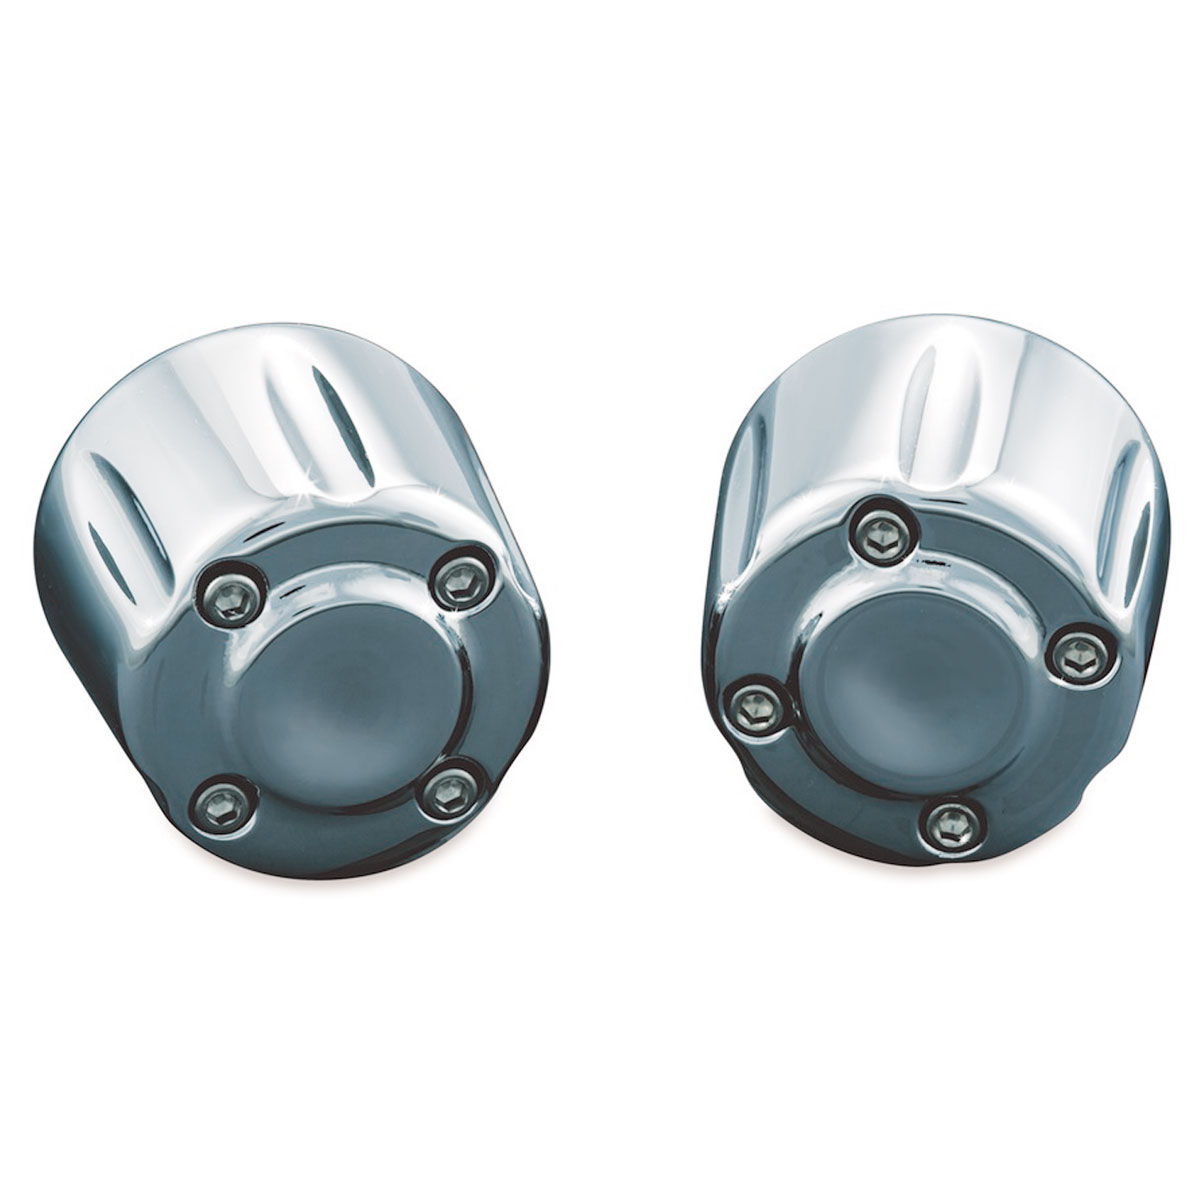 Kuryakyn Chrome Grip End Weights